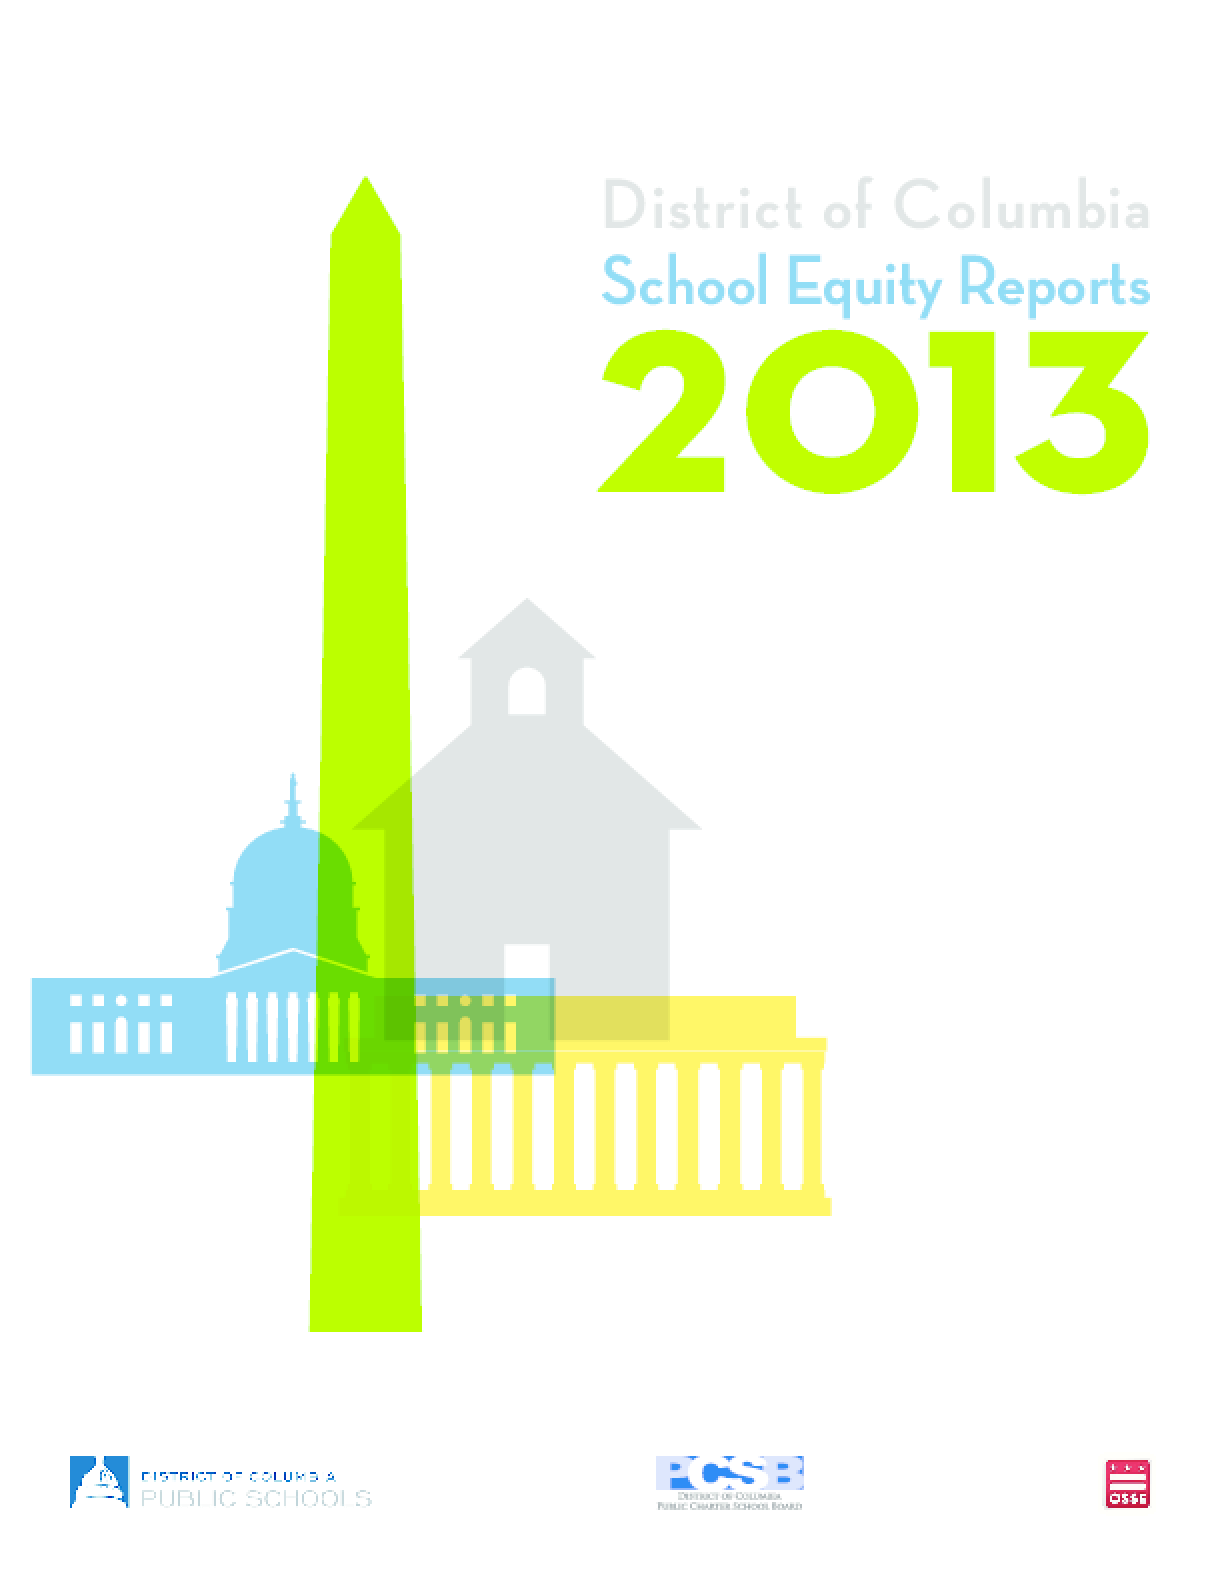 District of Columbia School Equity Reports: 2013 - Part Two